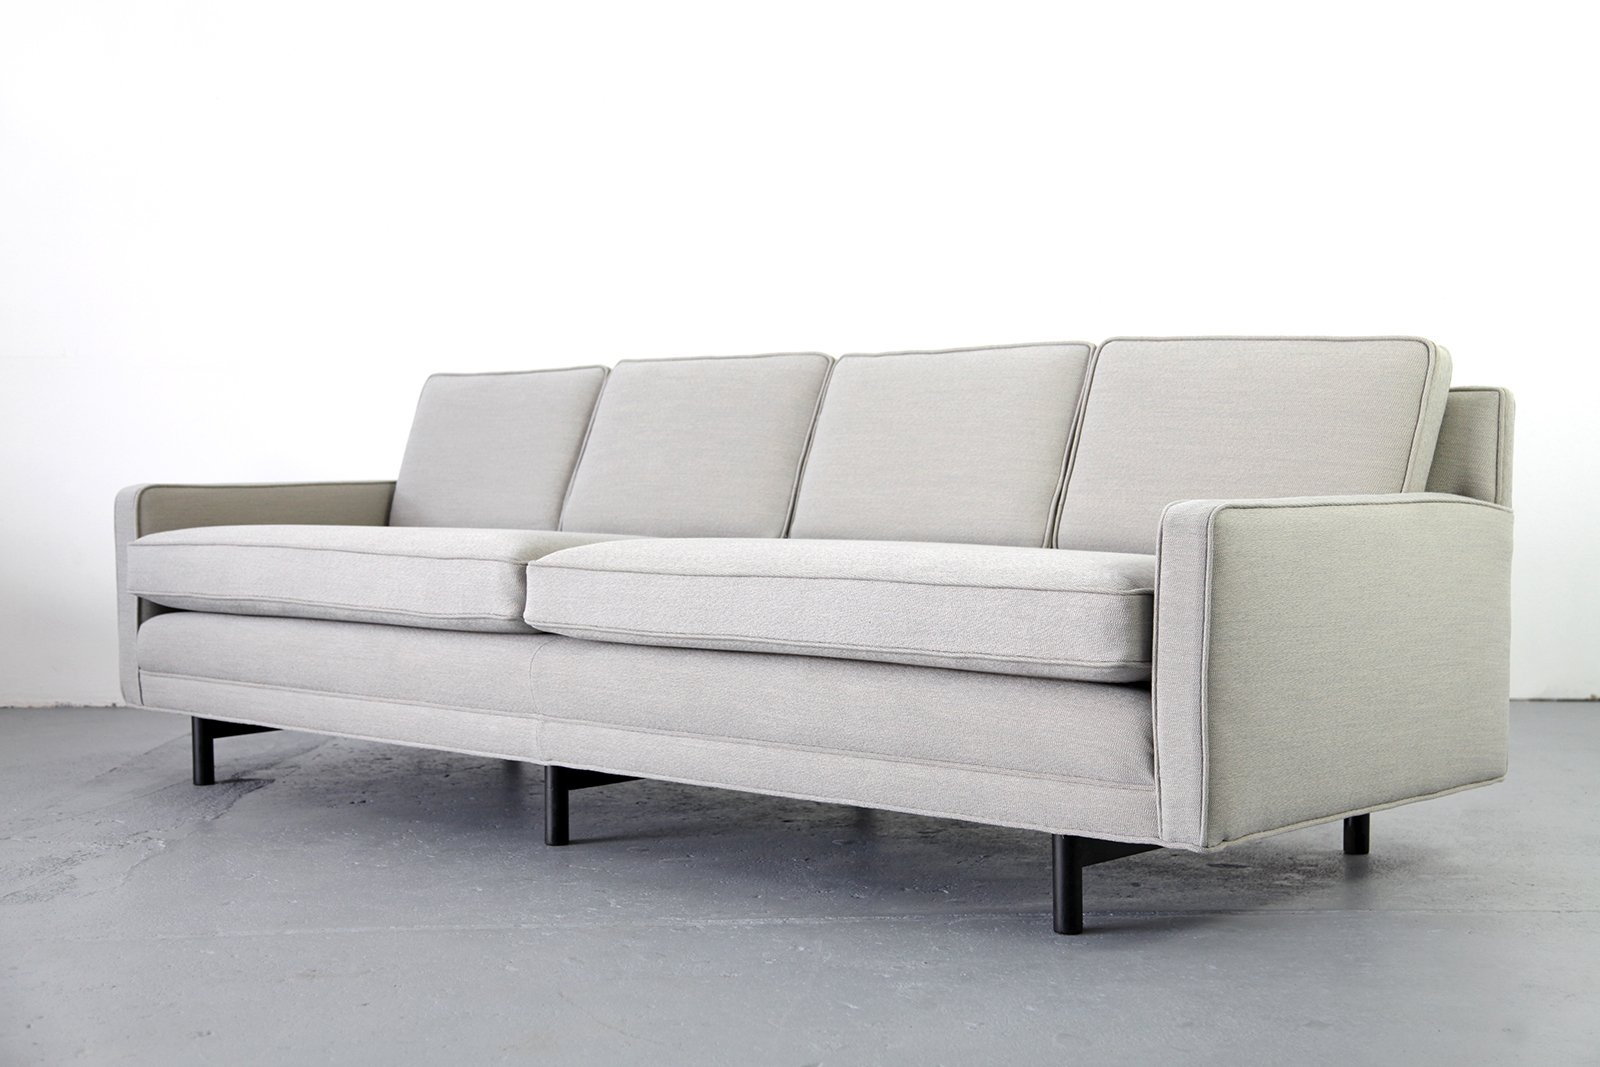 4 seater sofa by paul mccobb for directional for sale at for Sofa 75 cm tief